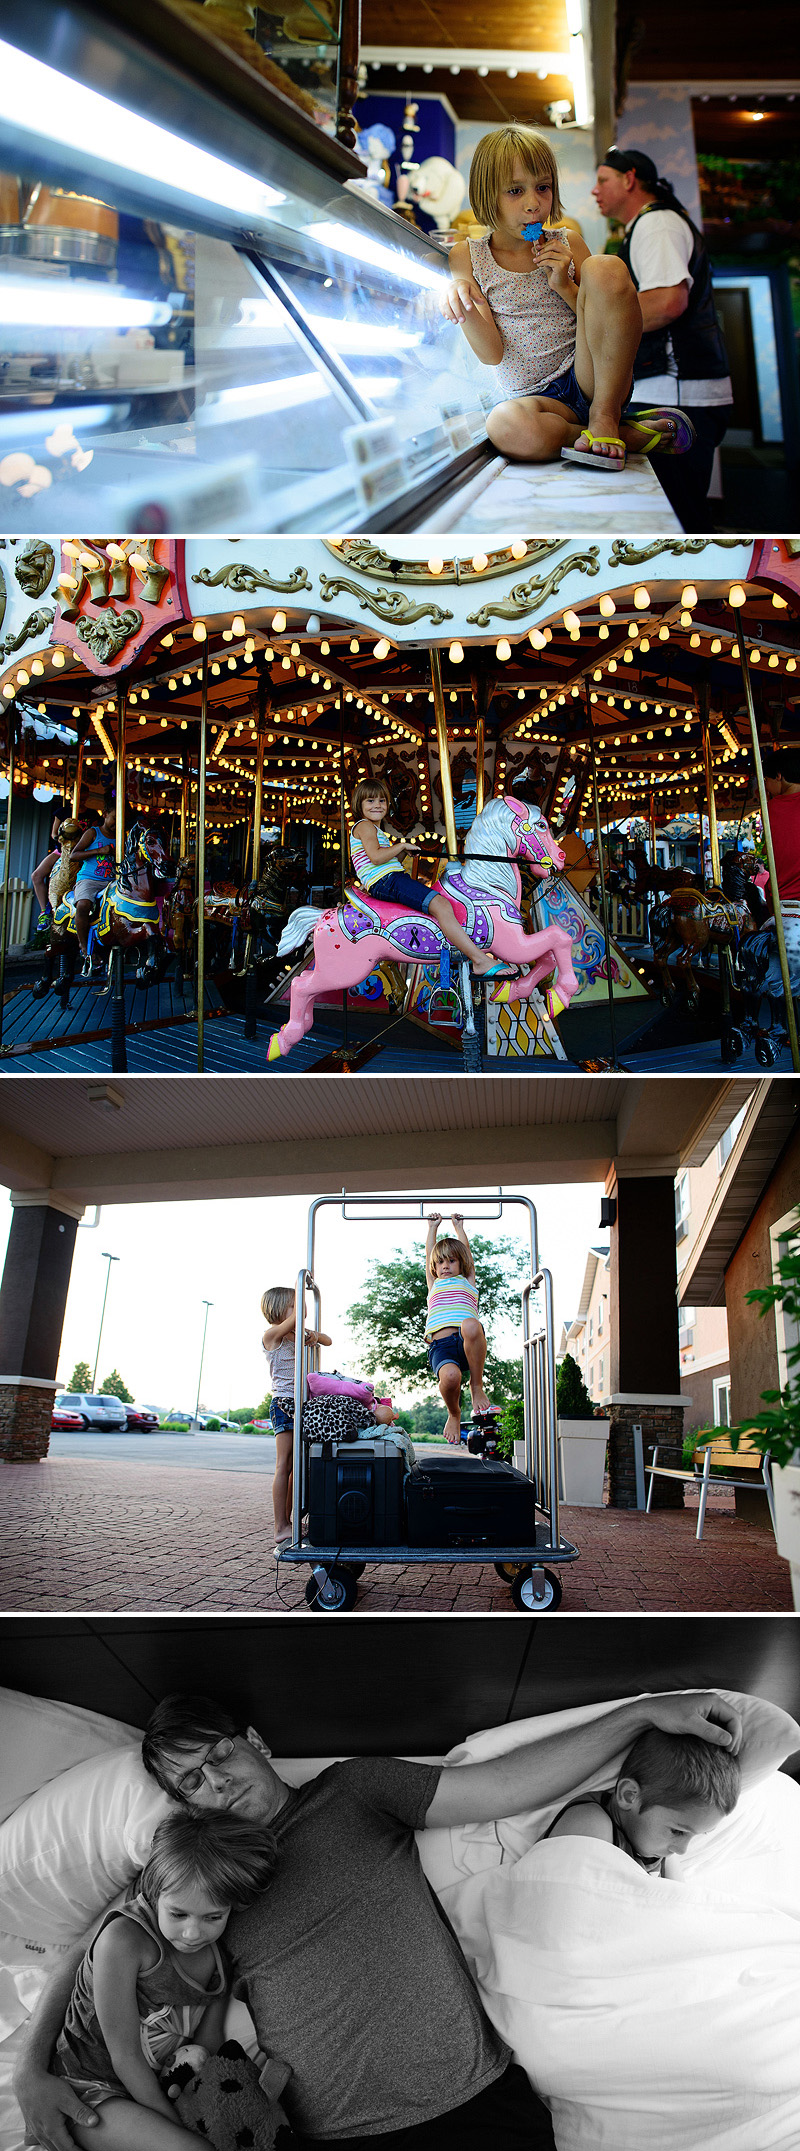 riding the carousel and eating ice cream at Ella's Deli